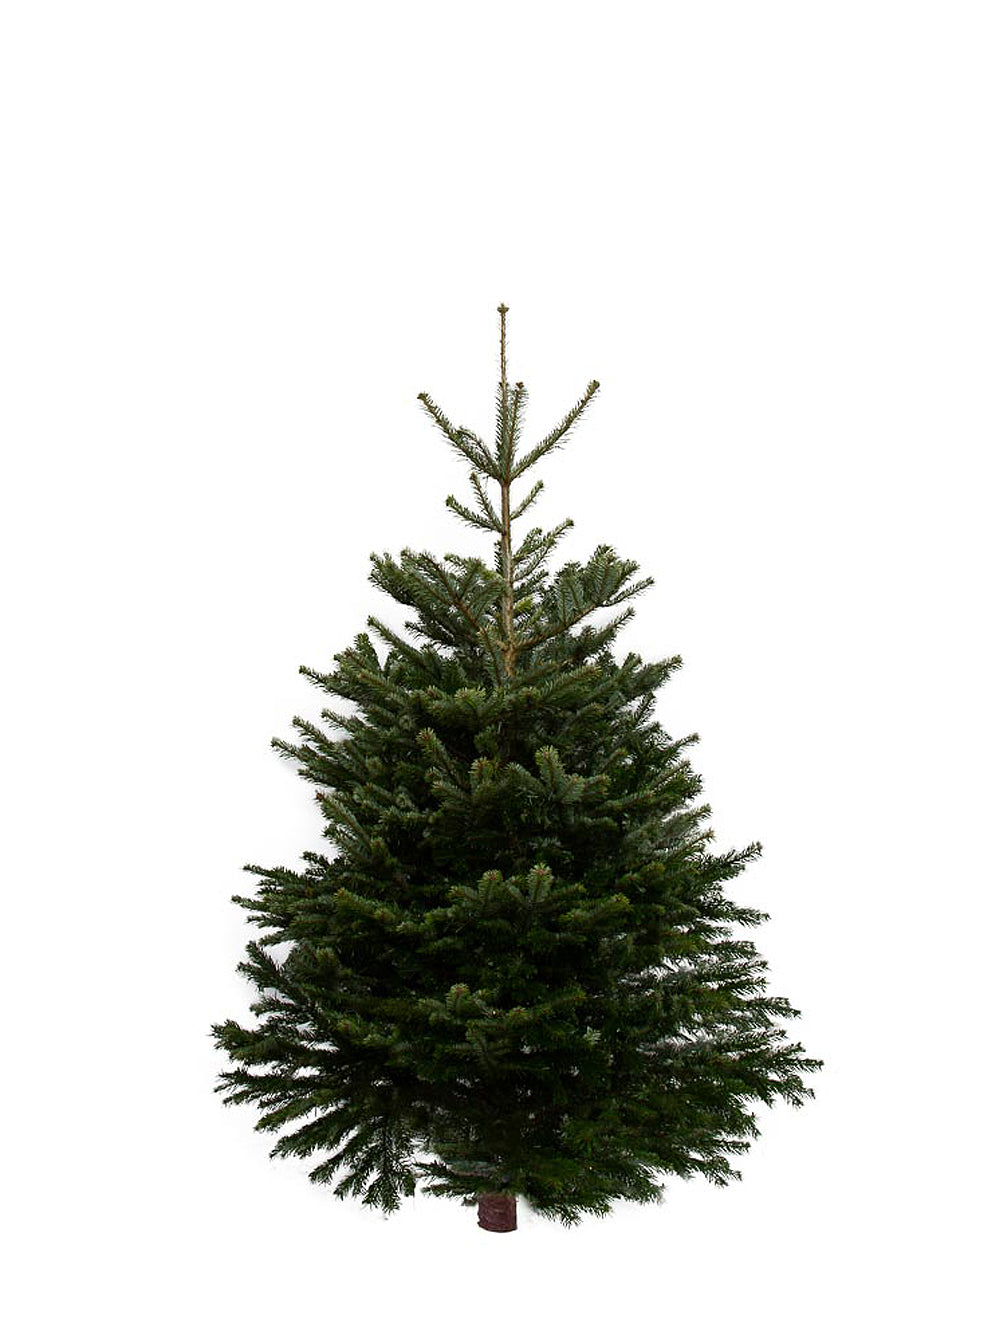 6ft Nordmann Fir Christmas Tree from Pines and Needles